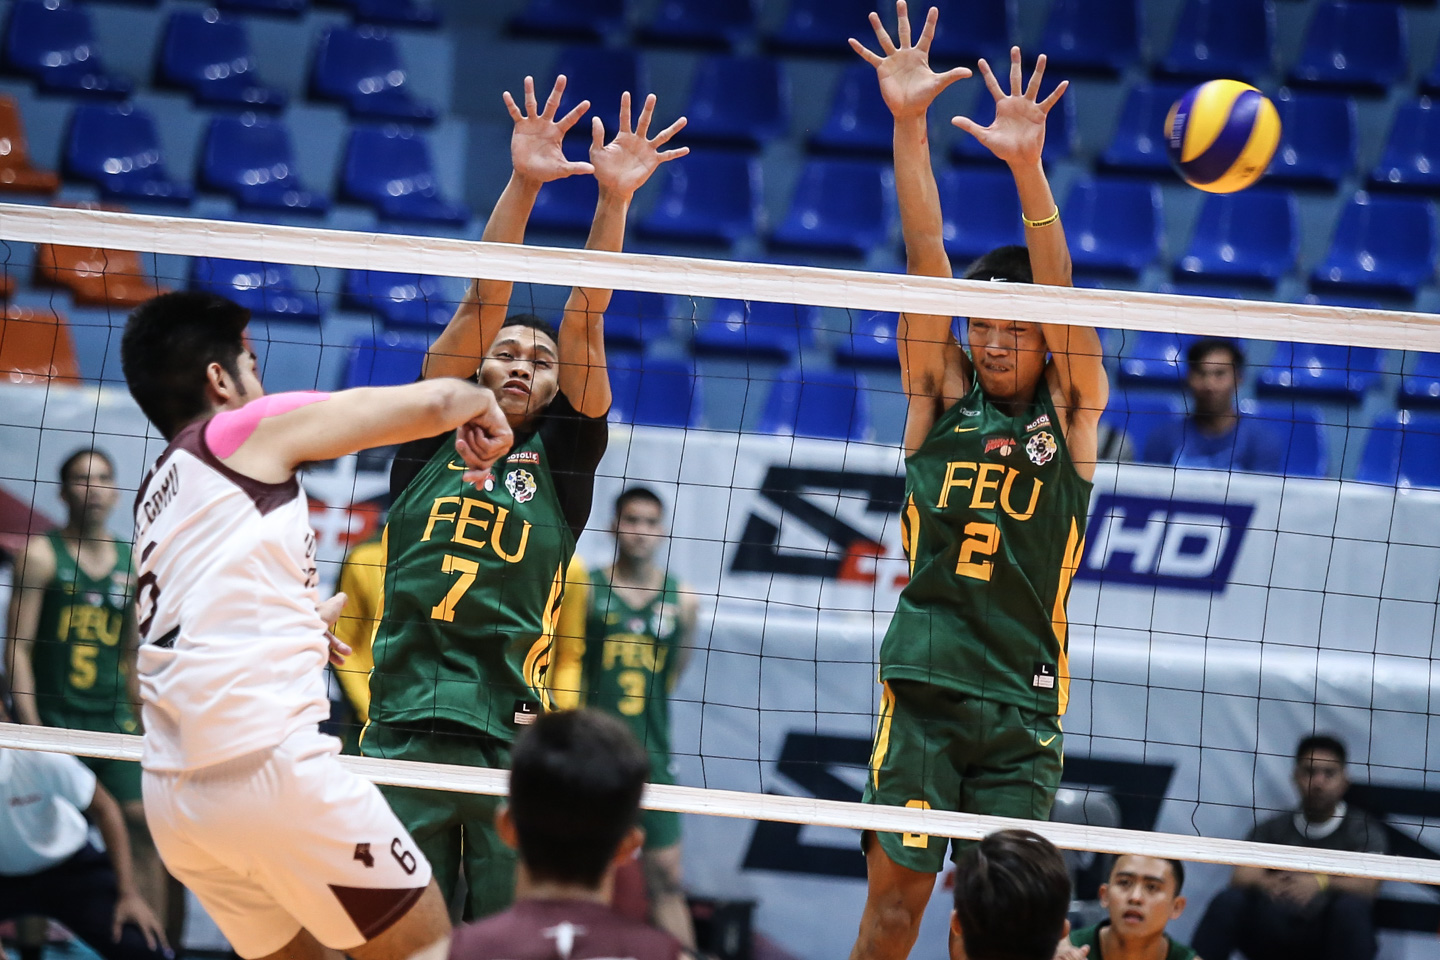 Uaap Men S Volleyball Feu Ust Dominate In Straight Sets